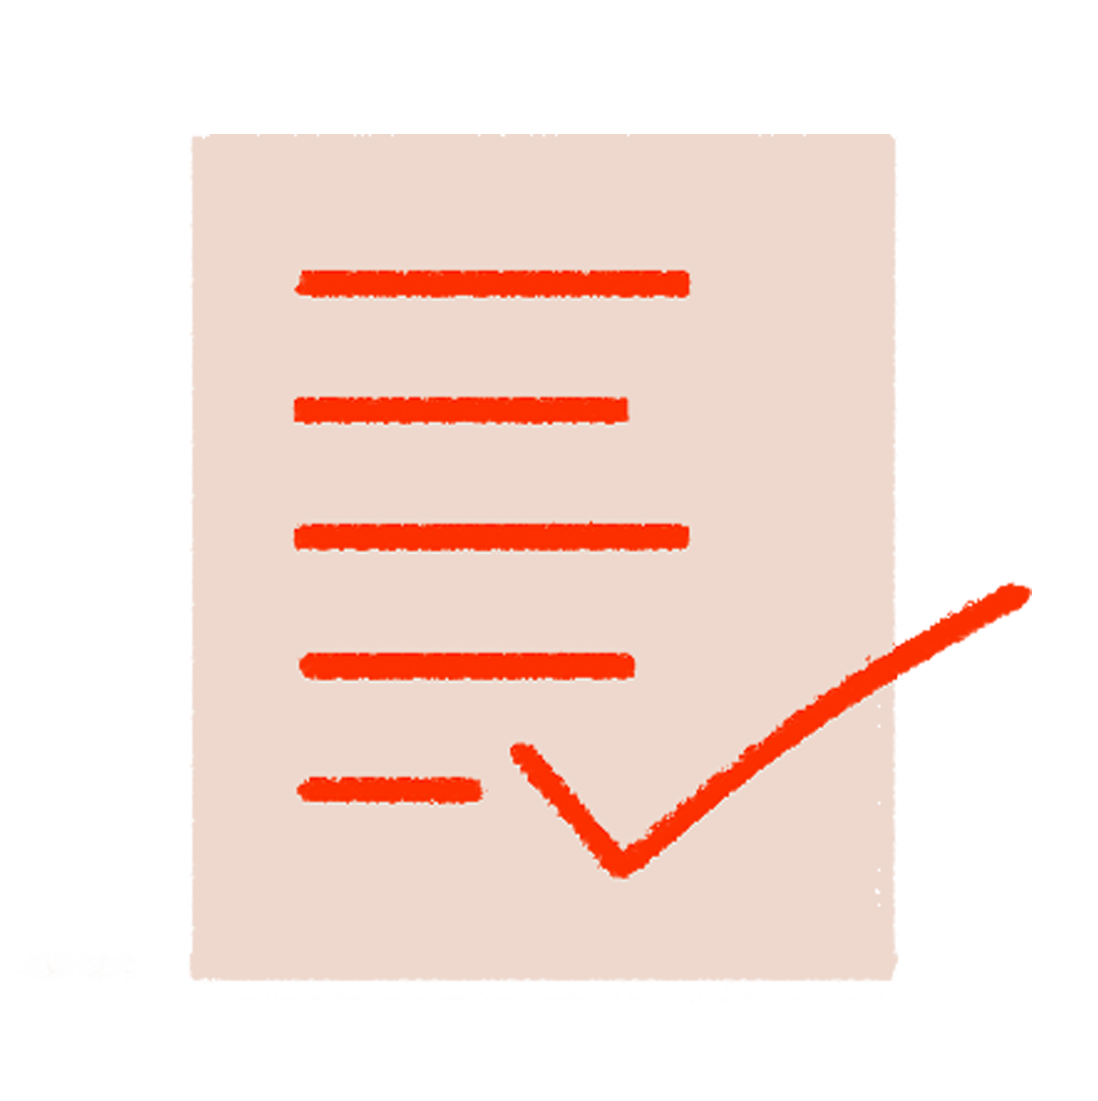 A checklist with a tick over it denoting full disclosure when someone is part of the MyMuse Beta Tester program at MyMuse Labs